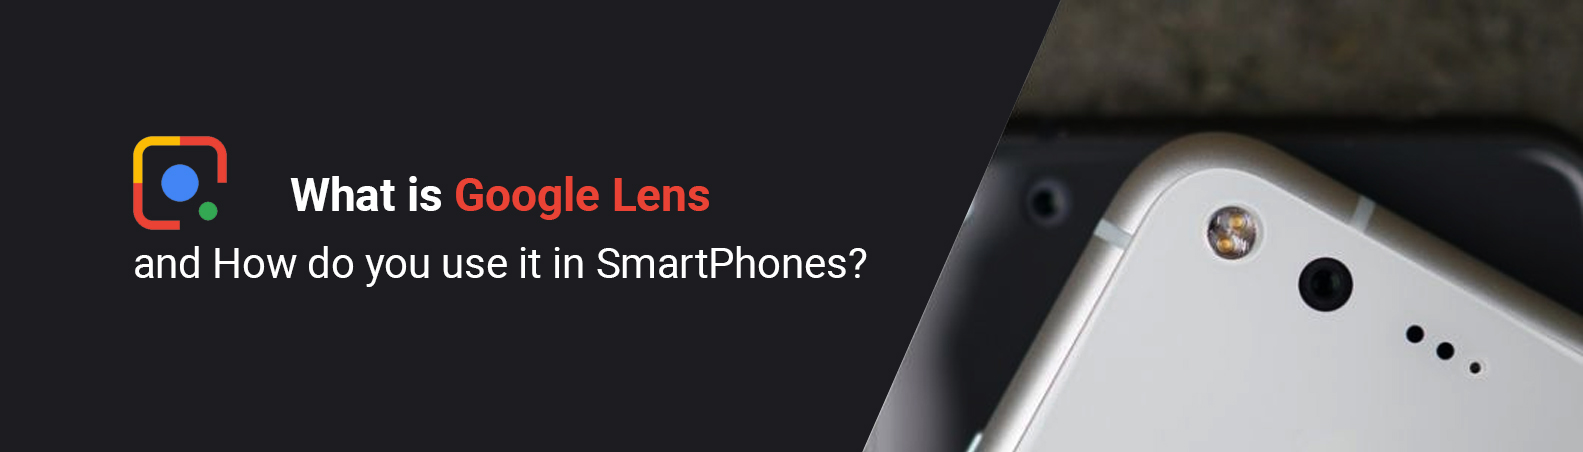 What is Google Lens and How do you use it in SmartPhones?